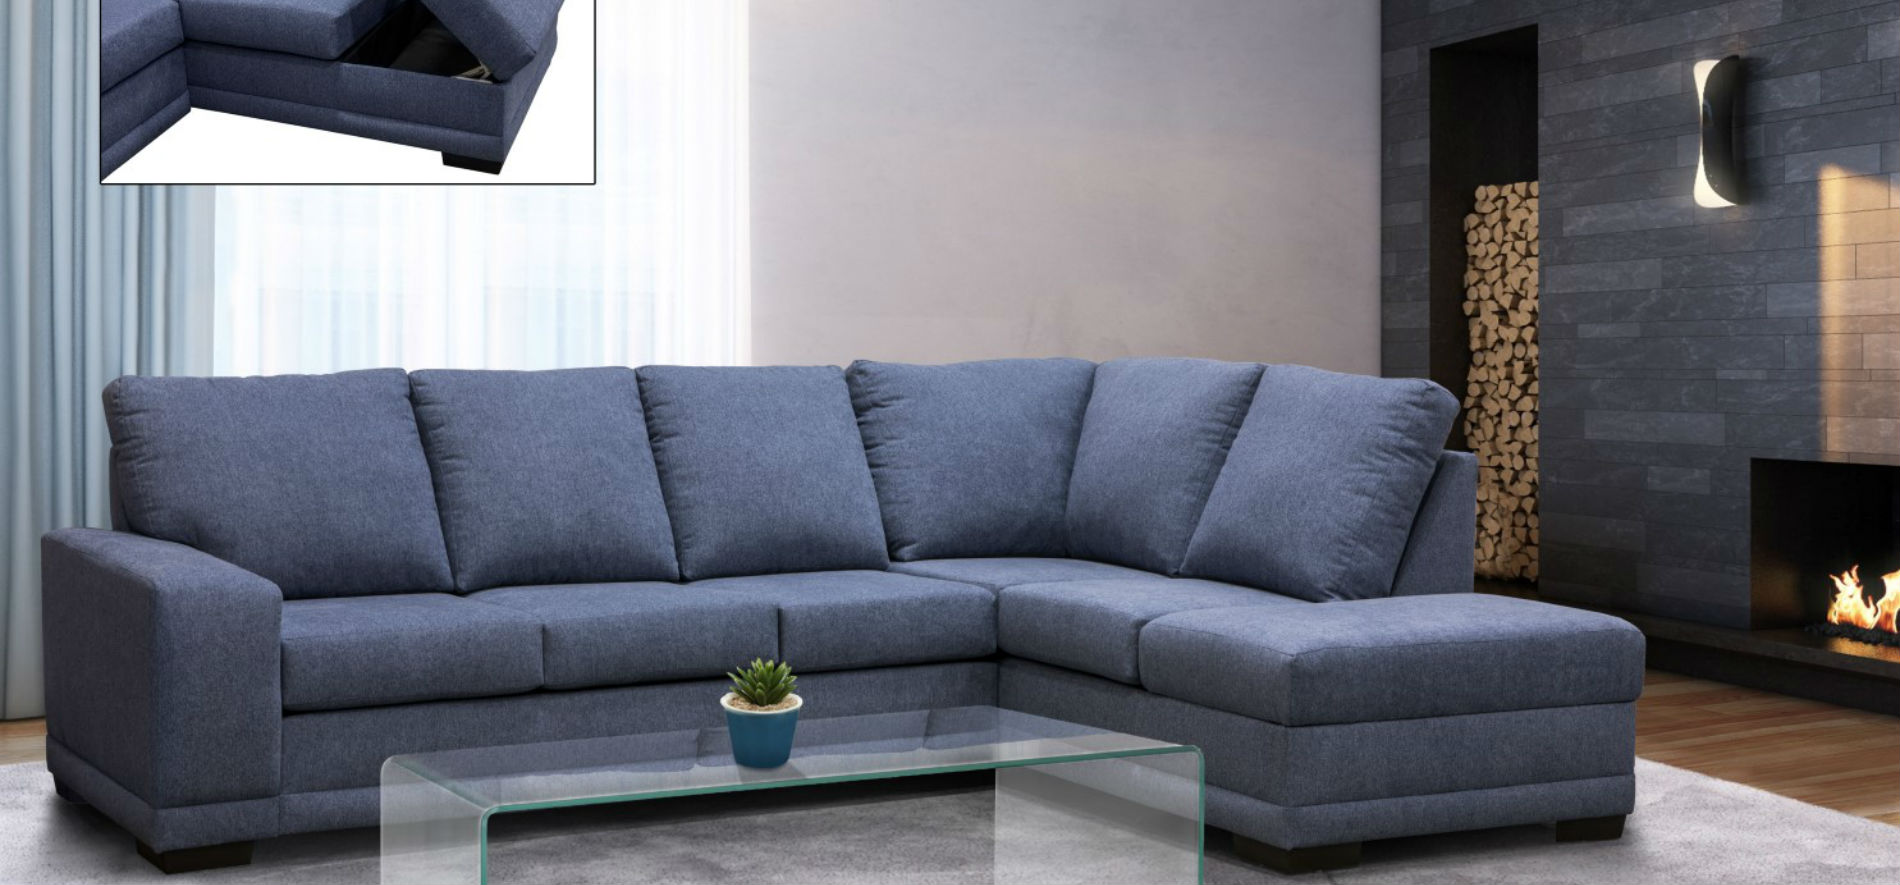 Edimbourg Fabric Sectional 21685 made in Canada